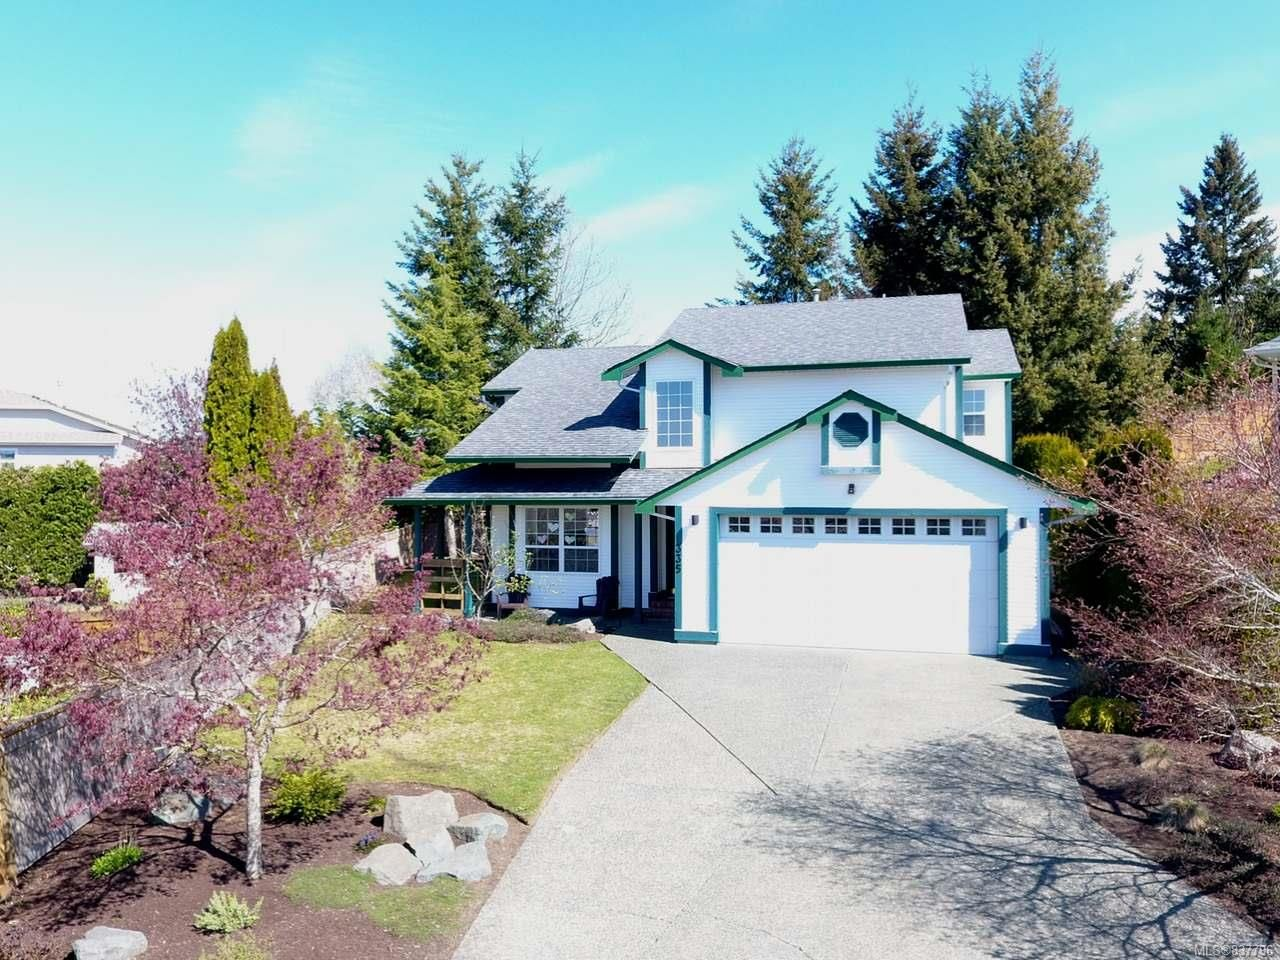 Main Photo: 335 Windemere Pl in CAMPBELL RIVER: CR Campbell River Central House for sale (Campbell River)  : MLS®# 837796